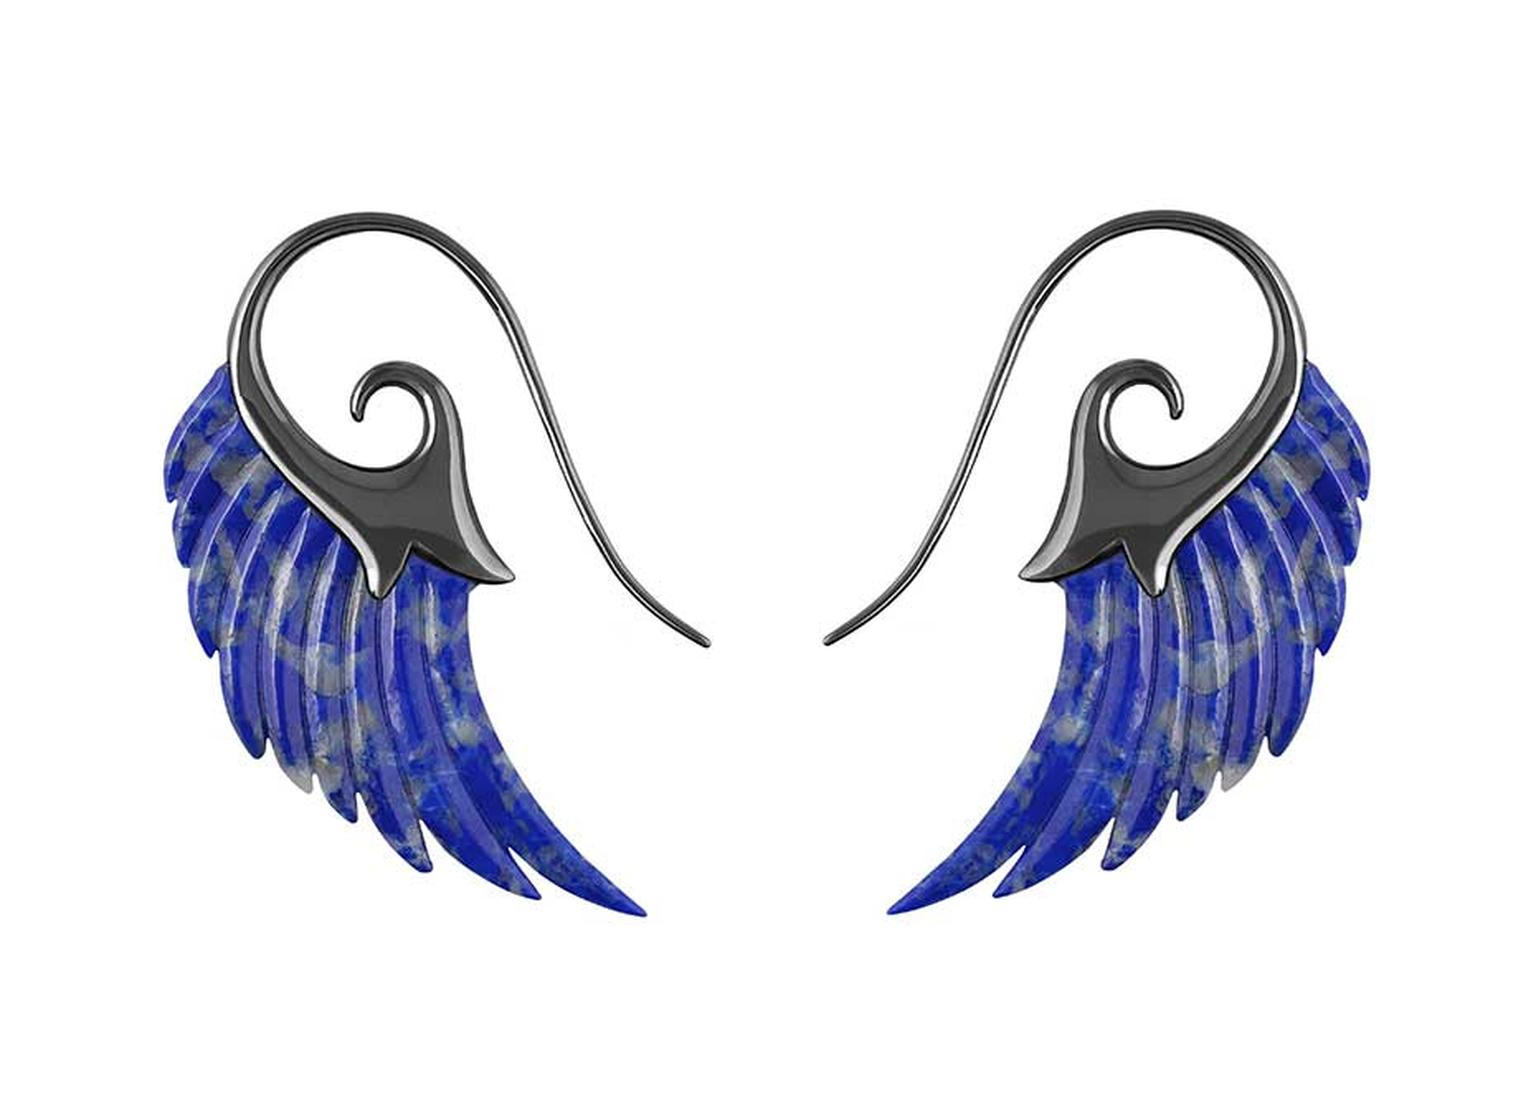 Noor Fares lapis lazuli Wing earrings with blue rhodium finish gold.